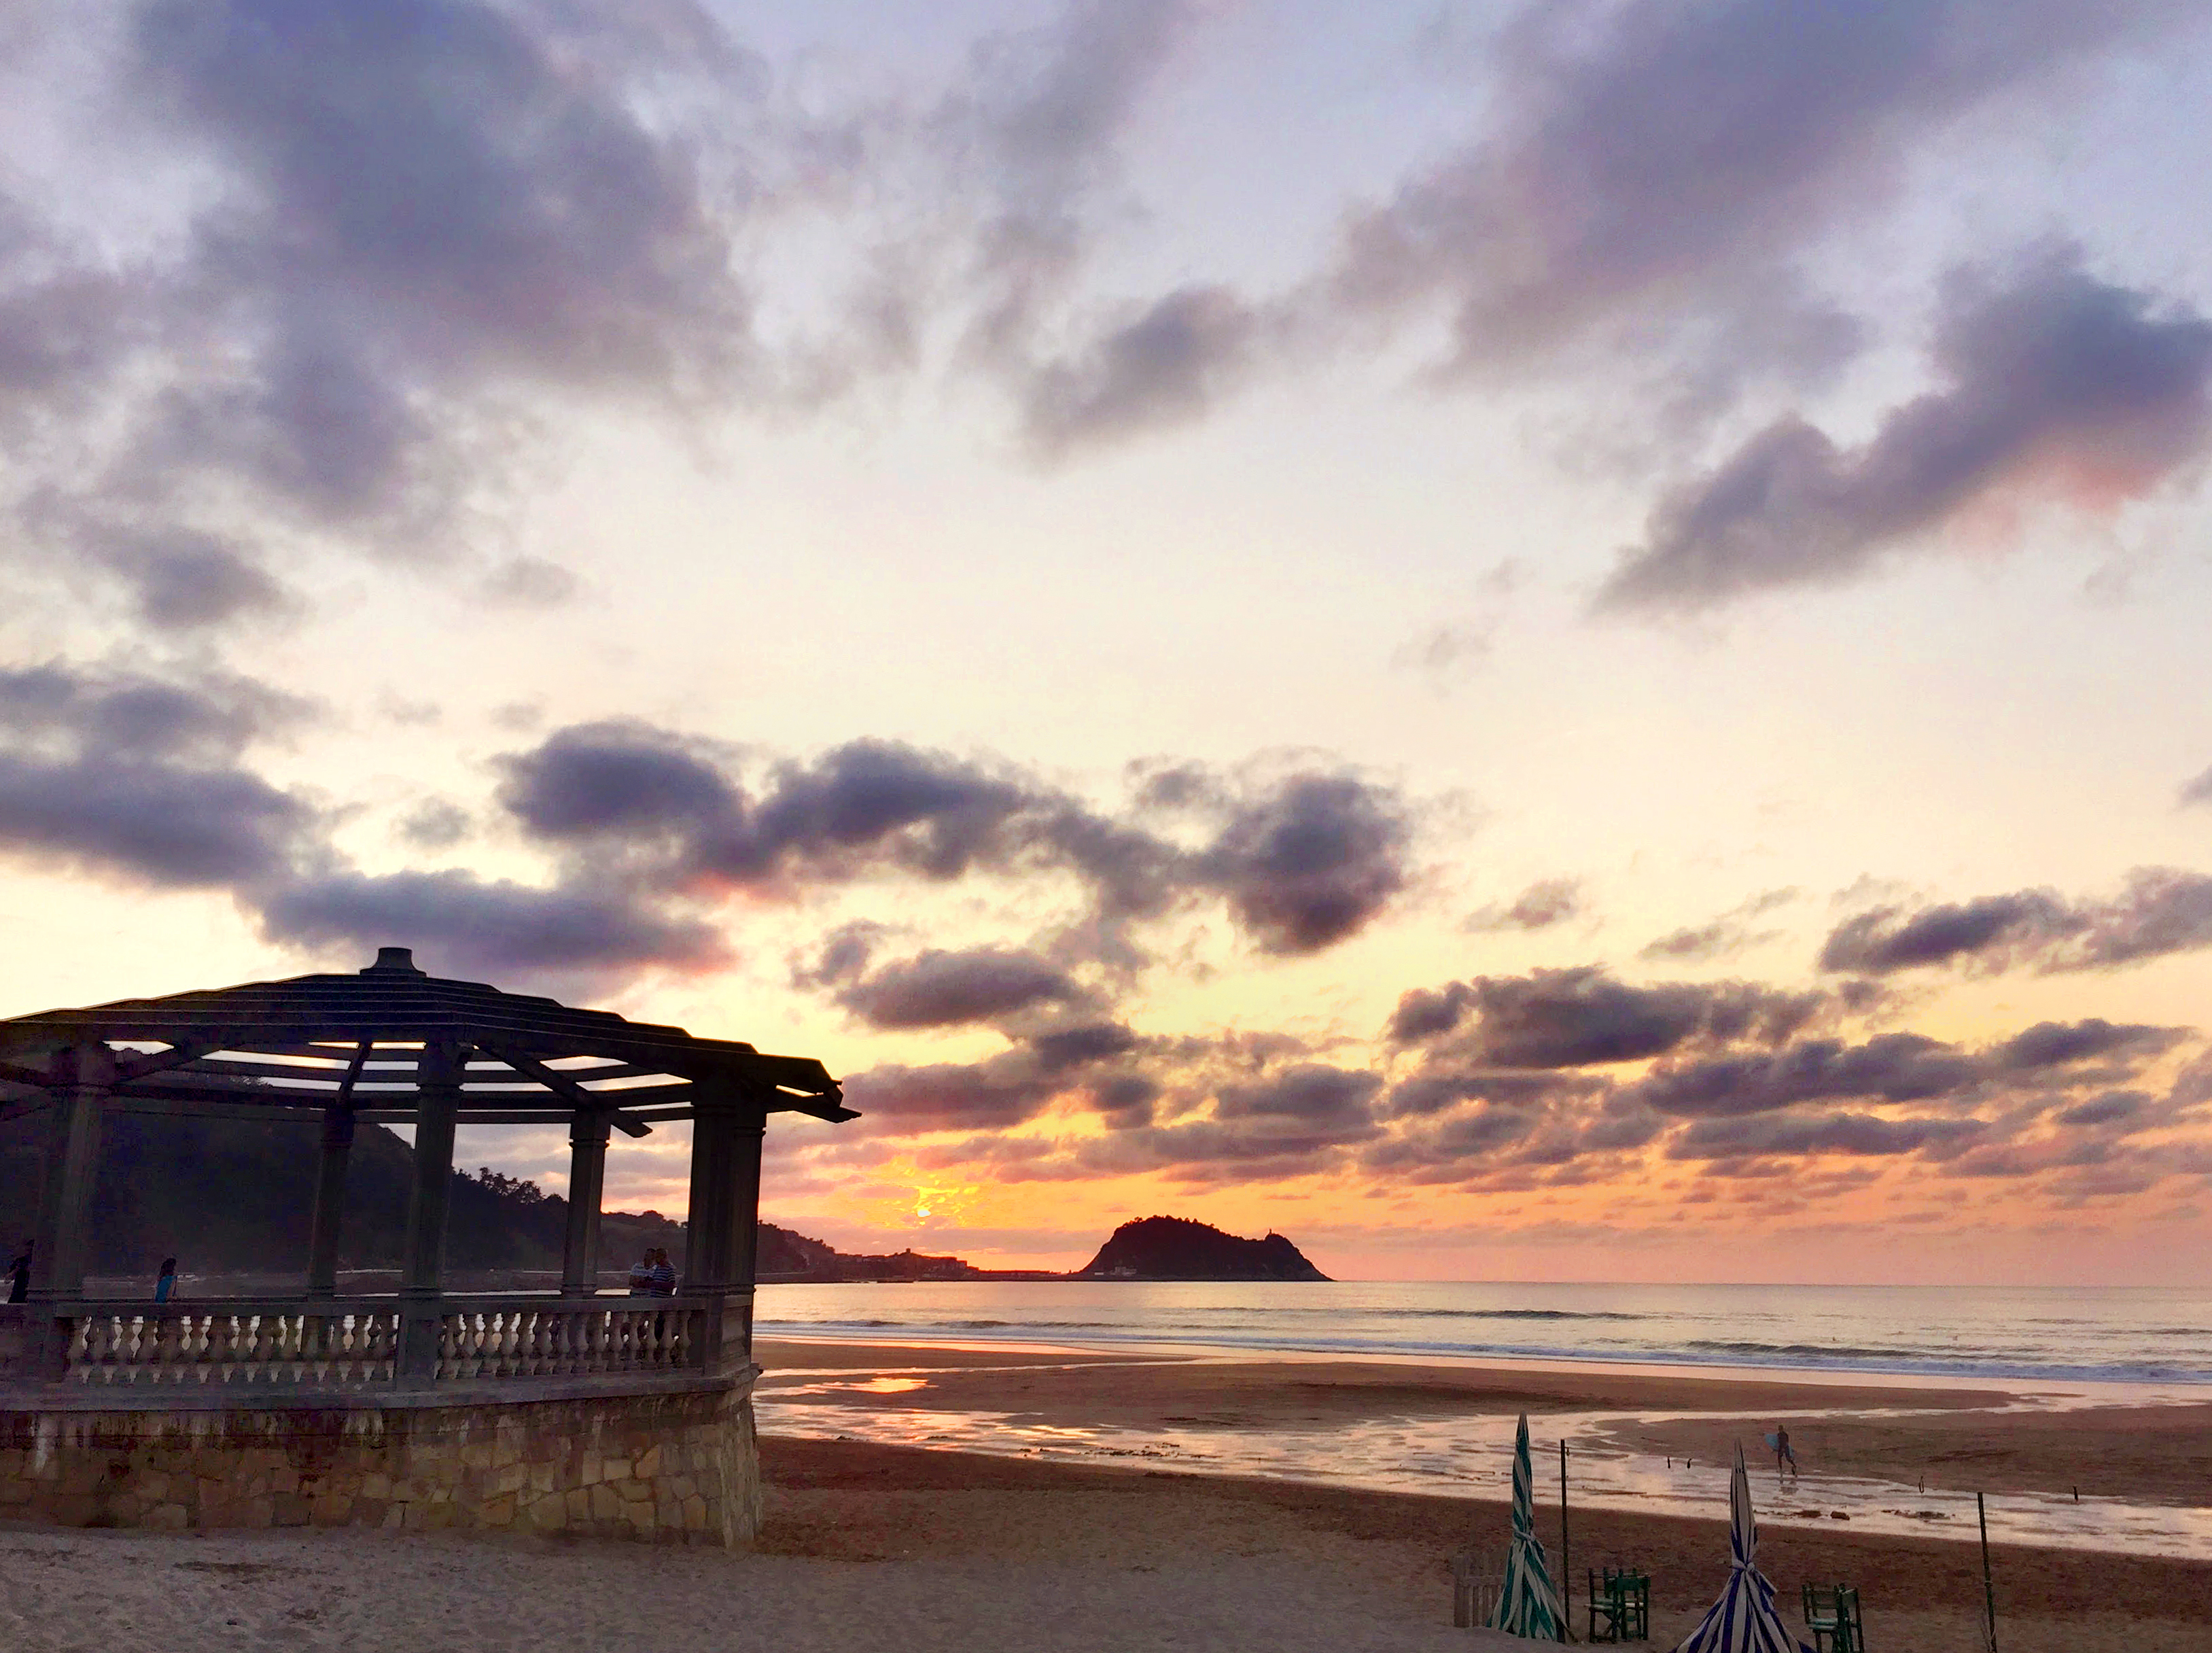 <strong>Charming Villages in Spain - Zarautz (Gipuzkoa)</strong>